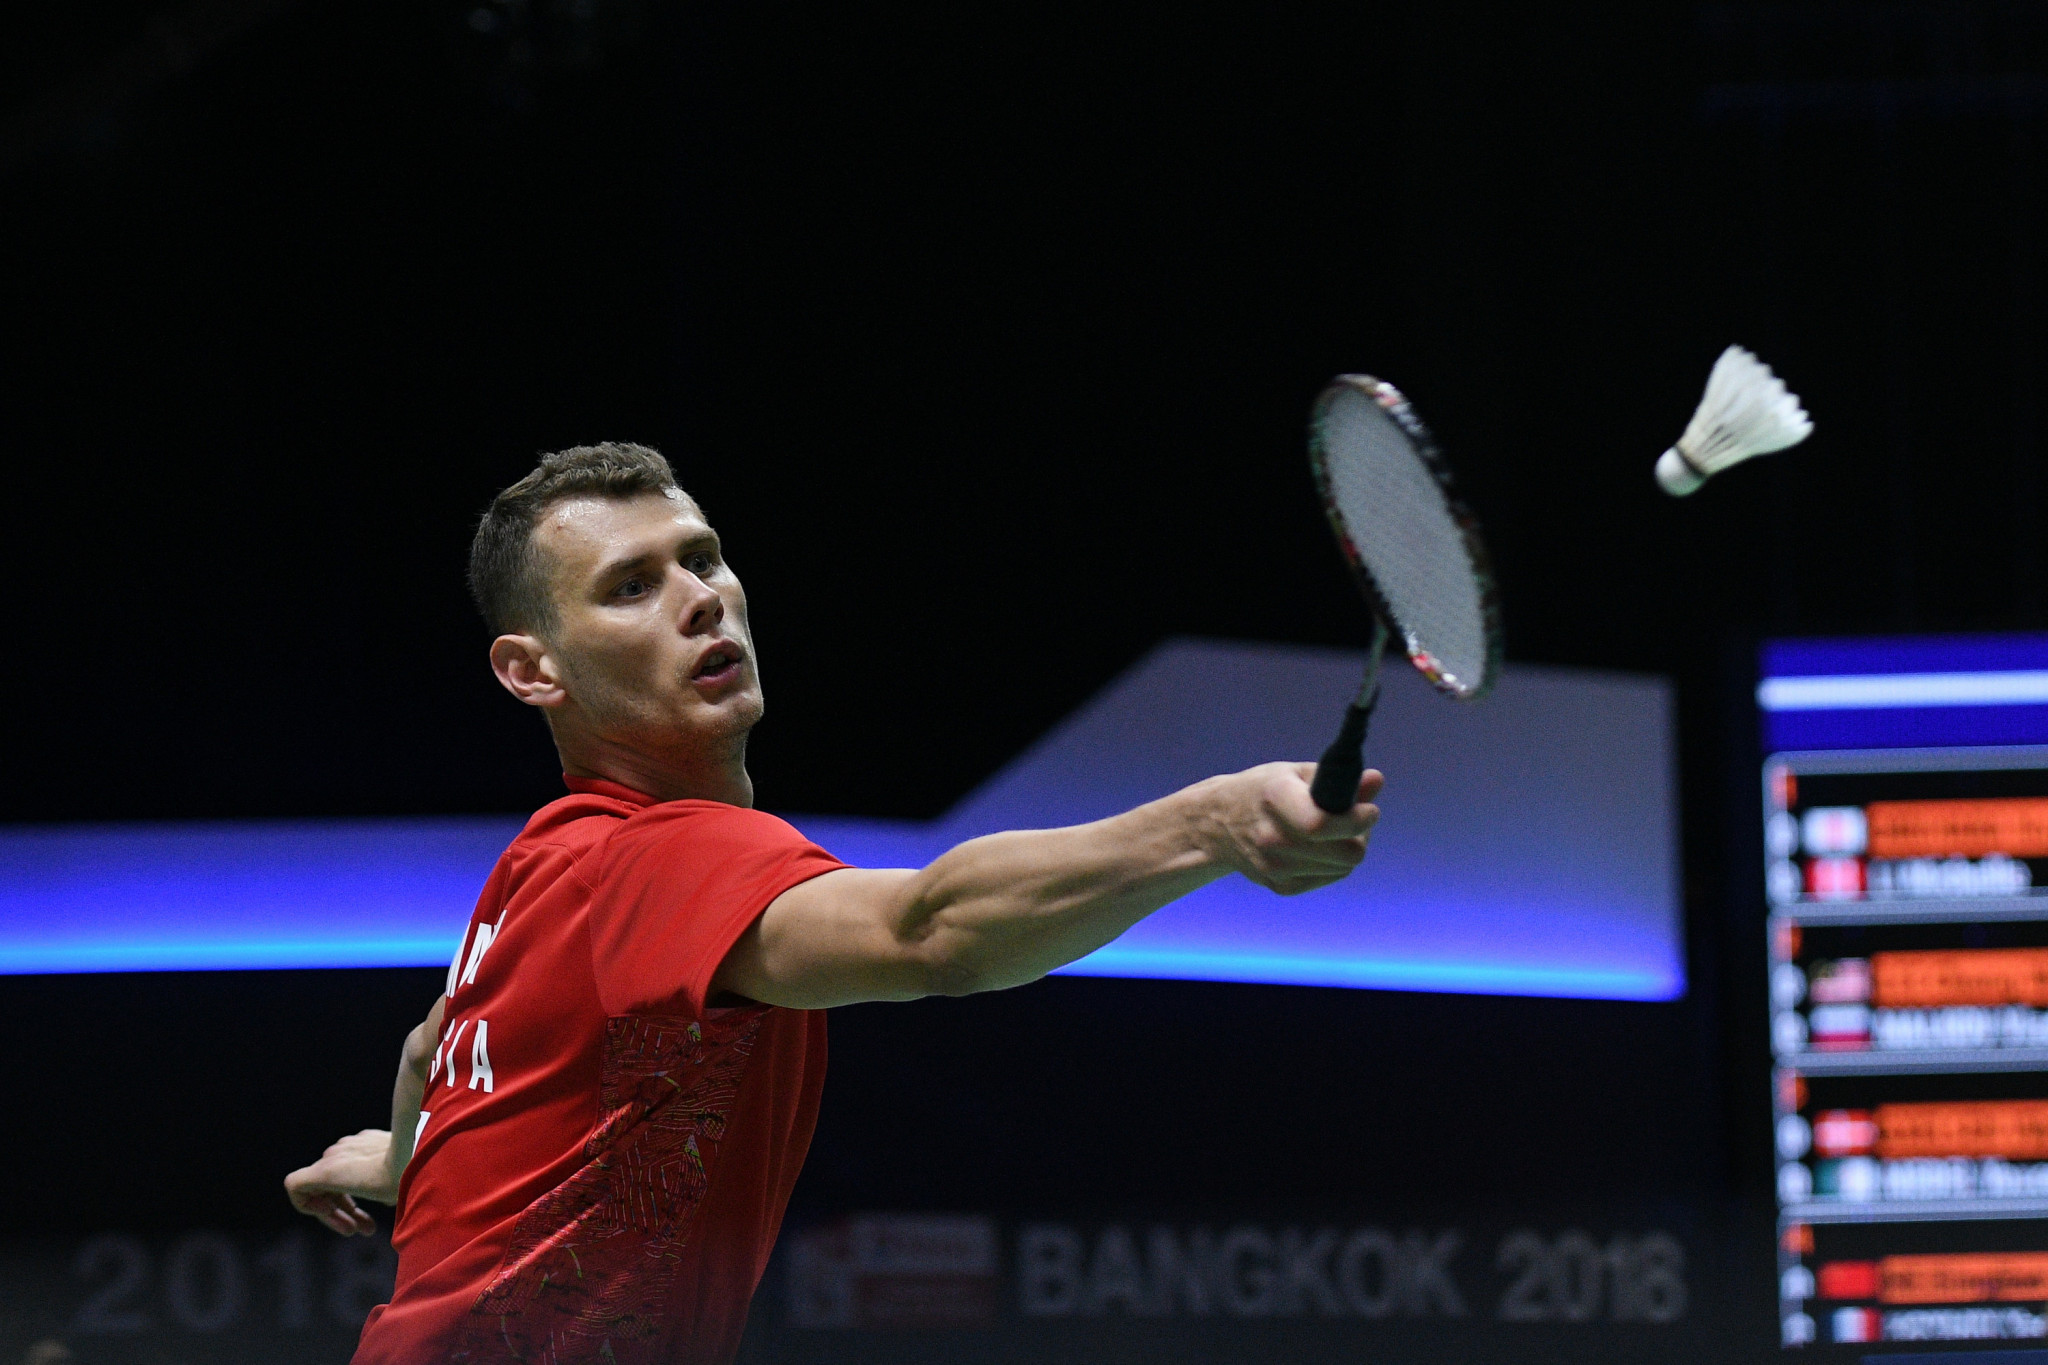 Vladimir Malkov helped Russia advance into the semi-finals with a 4-1 win over Ireland at the European Mixed Team Badminton Championships in Denmark ©Getty Images